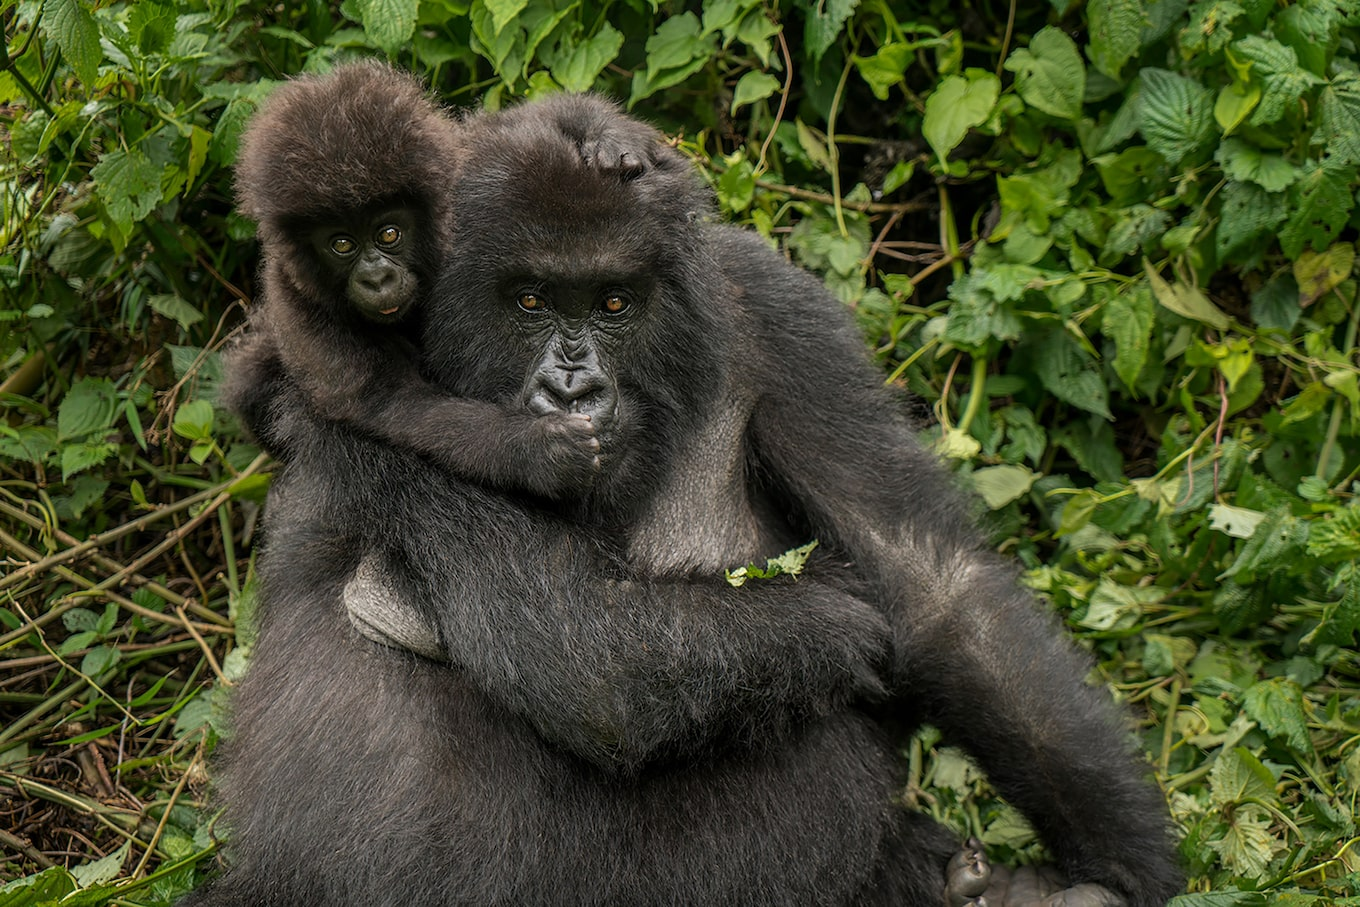 suha-derbent-sony-alpha-7RII-mother-and-baby-gorilla-looking-straight-at-camera